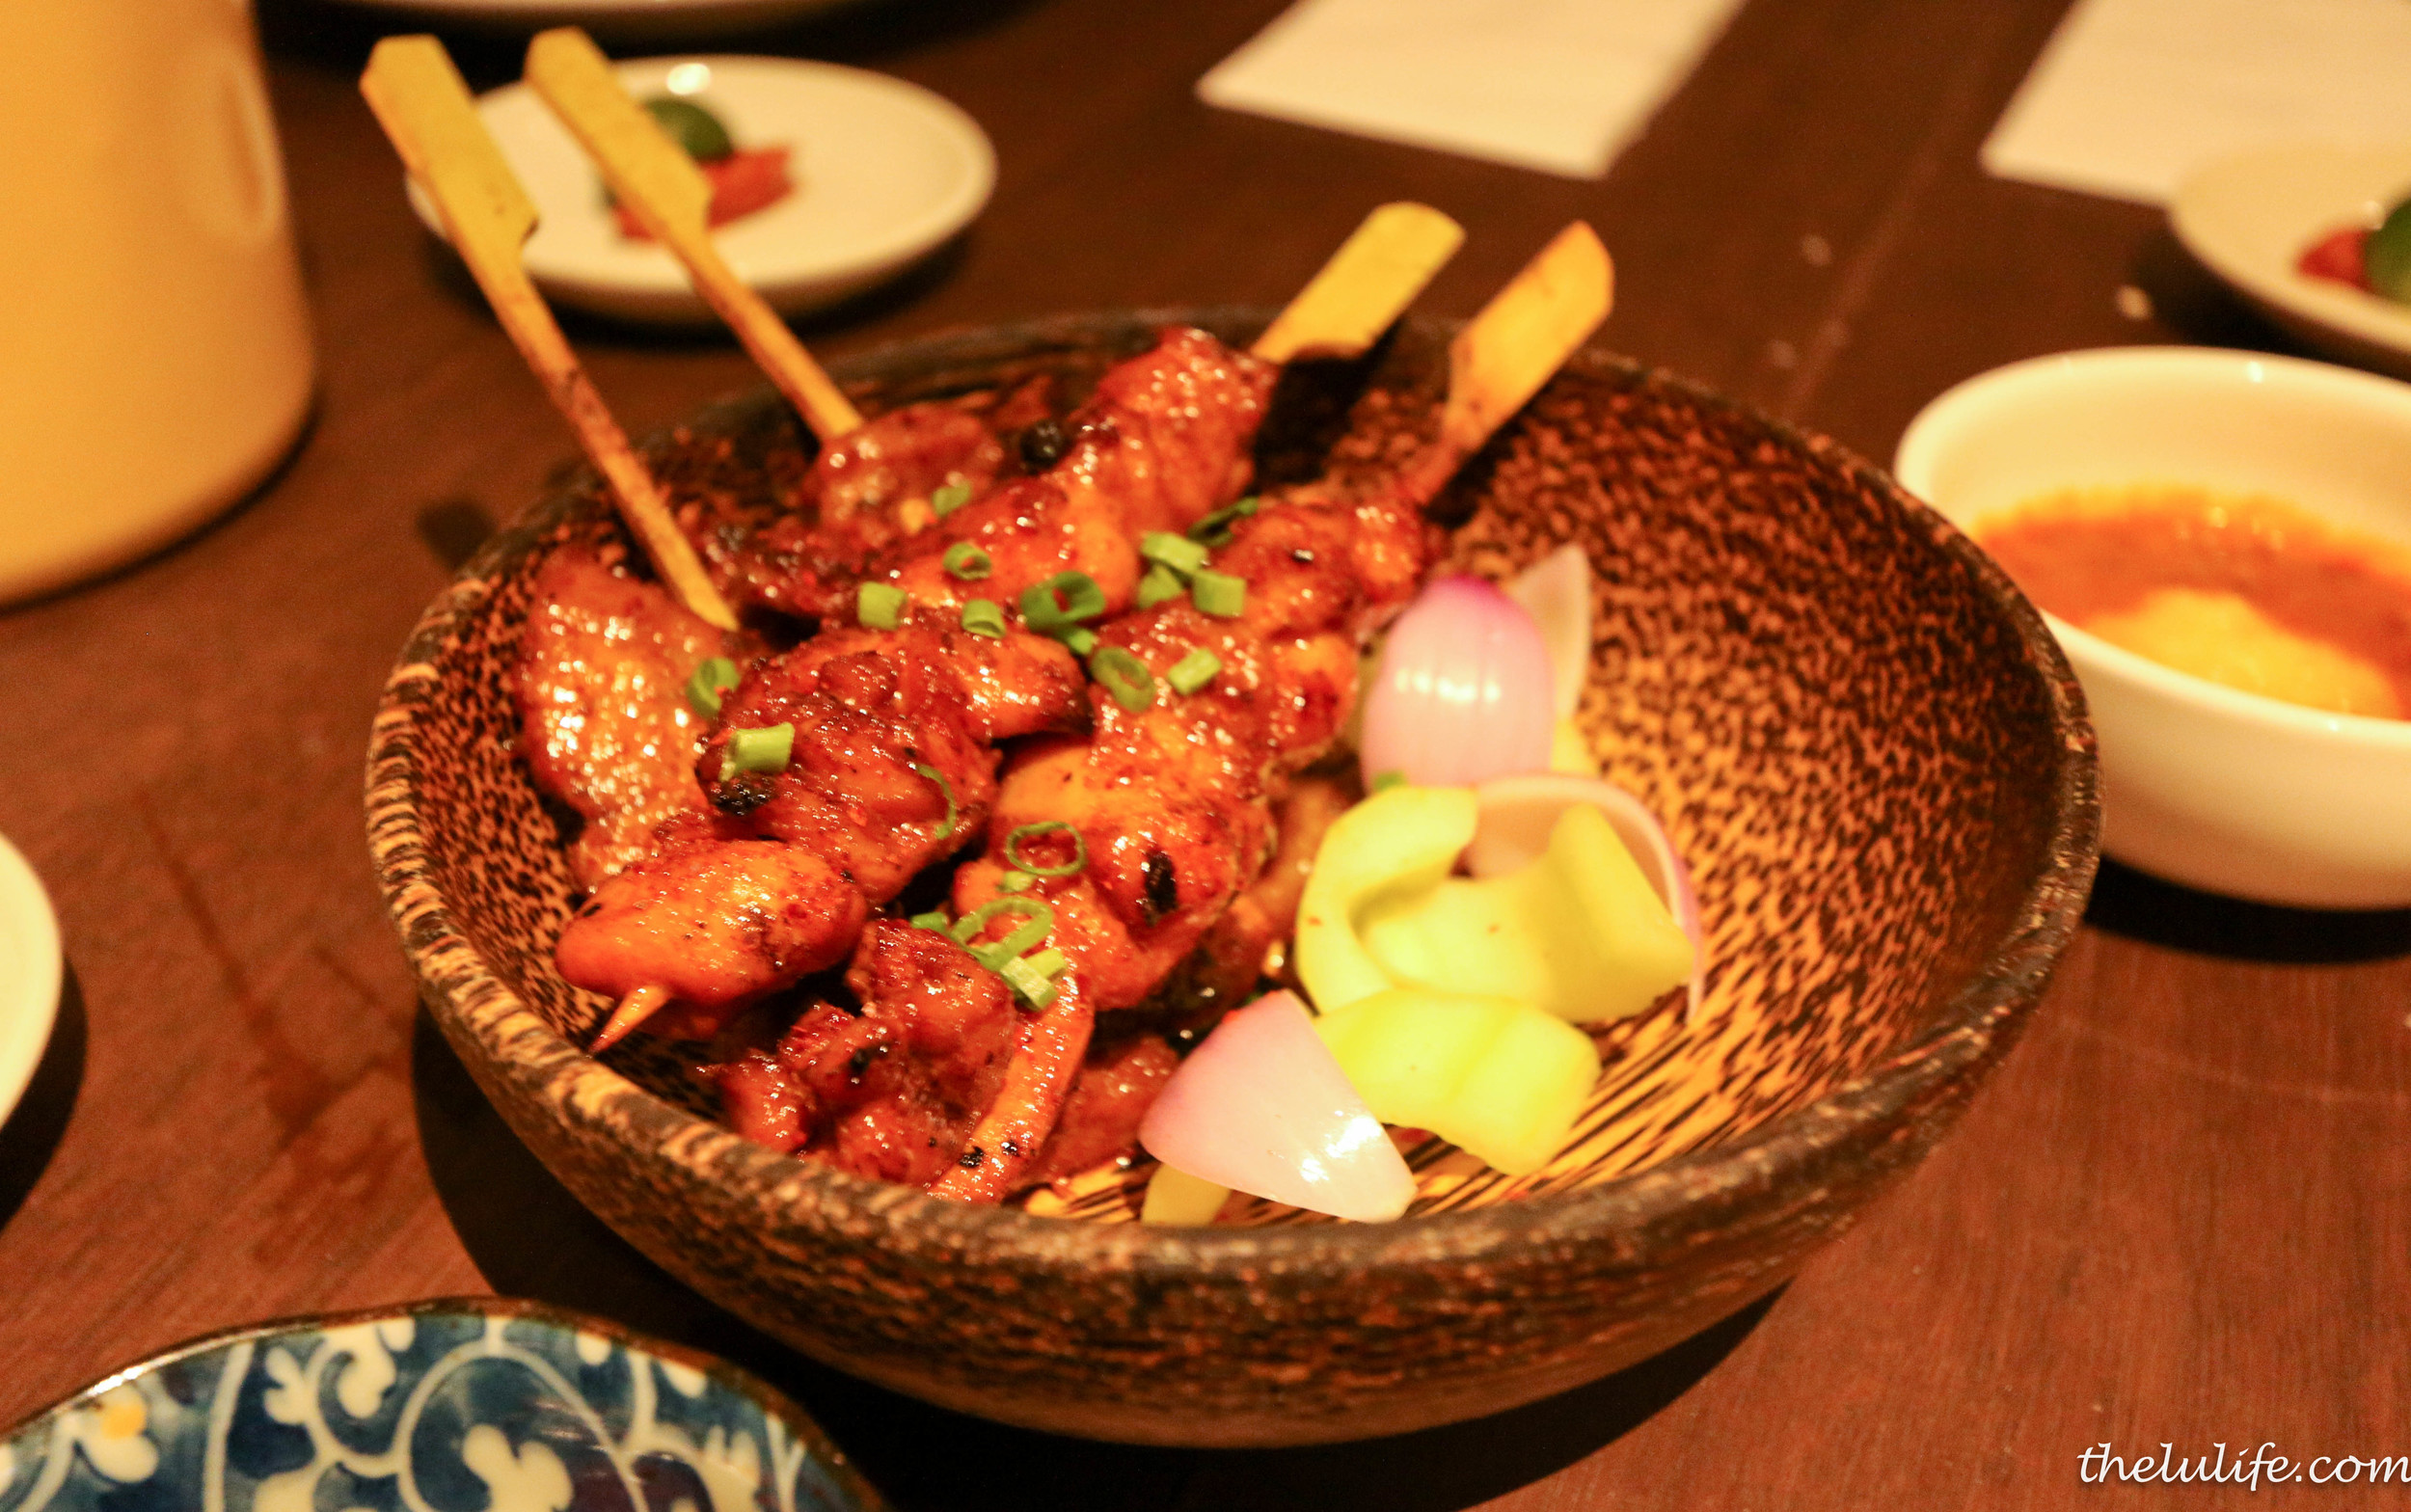 Candlenut Satay - grilled spiced marinated chicken thigh and pork belly served with rich homemade pineapple peanut sauce, cucumbers and red onions